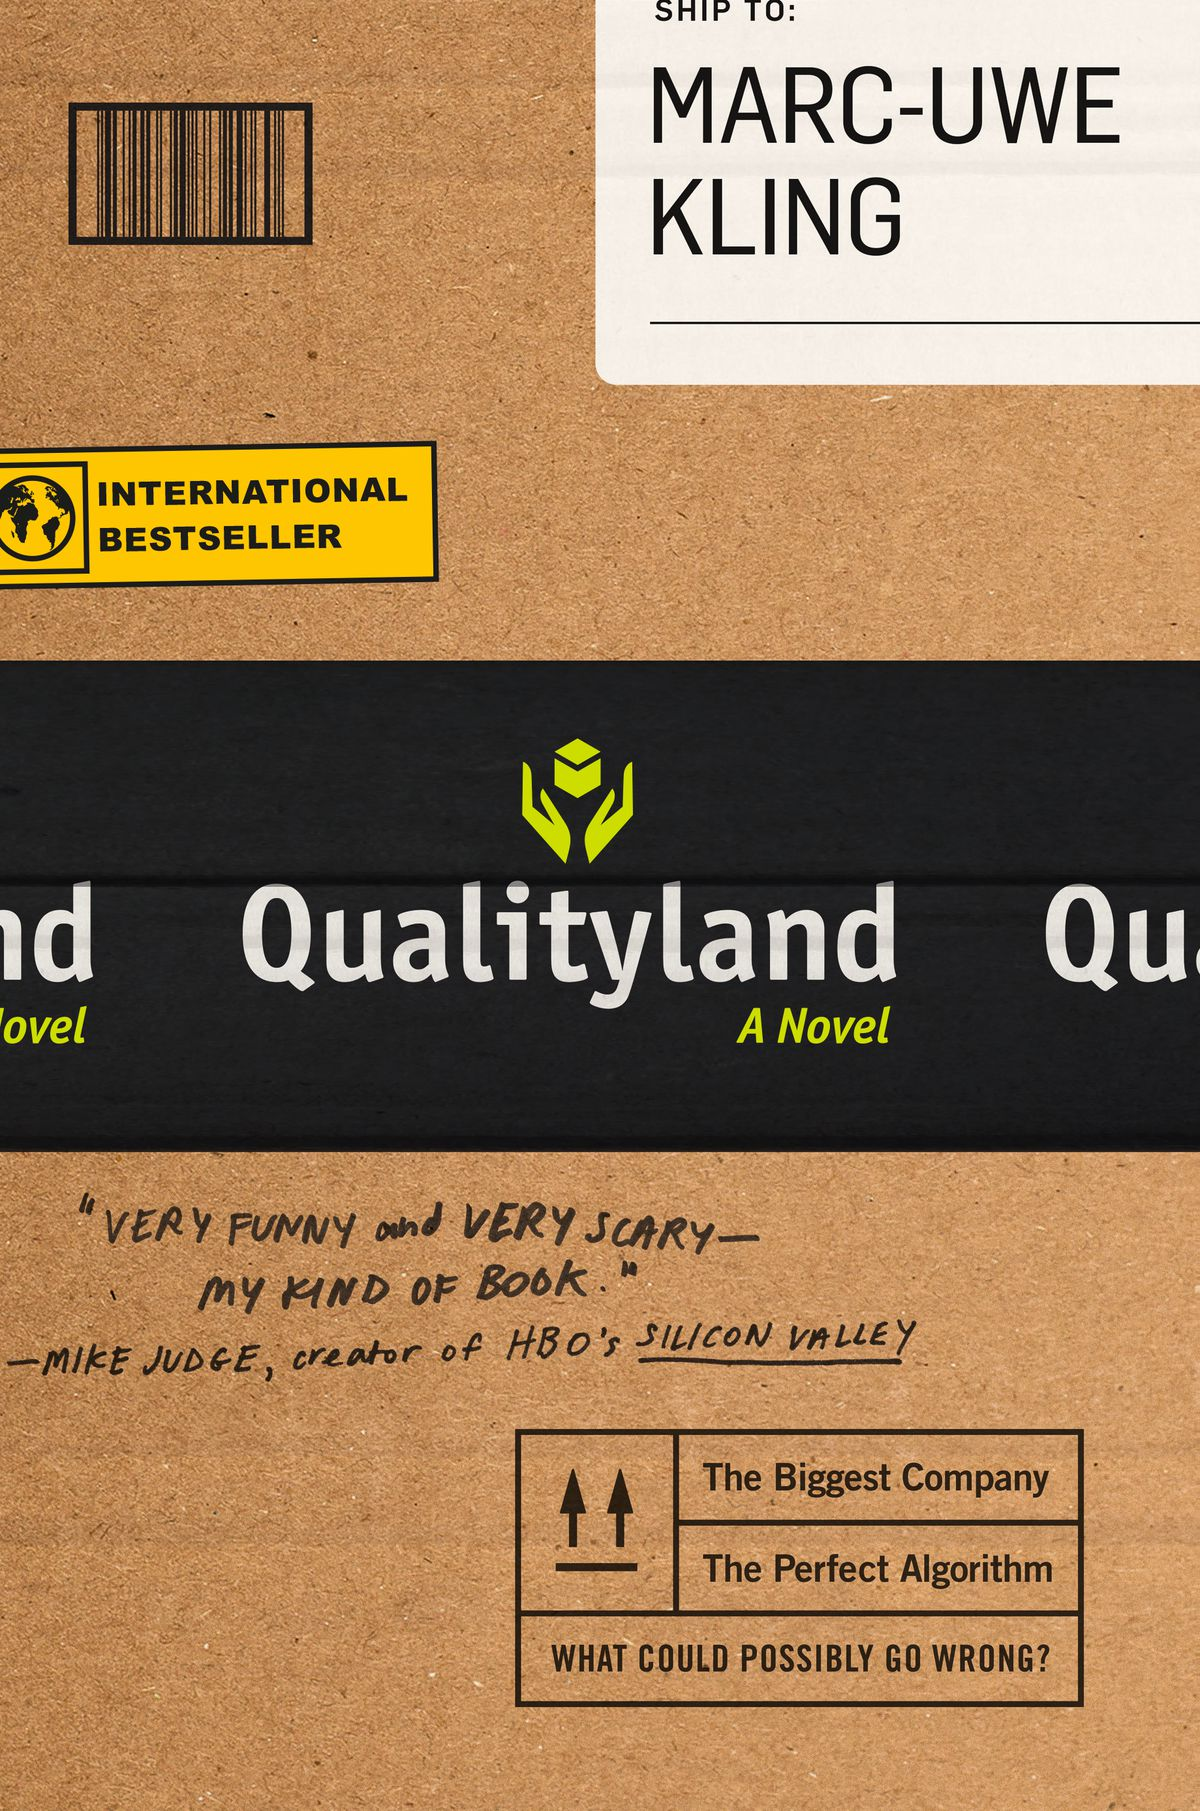 qualityland book cover looks like an amazon package